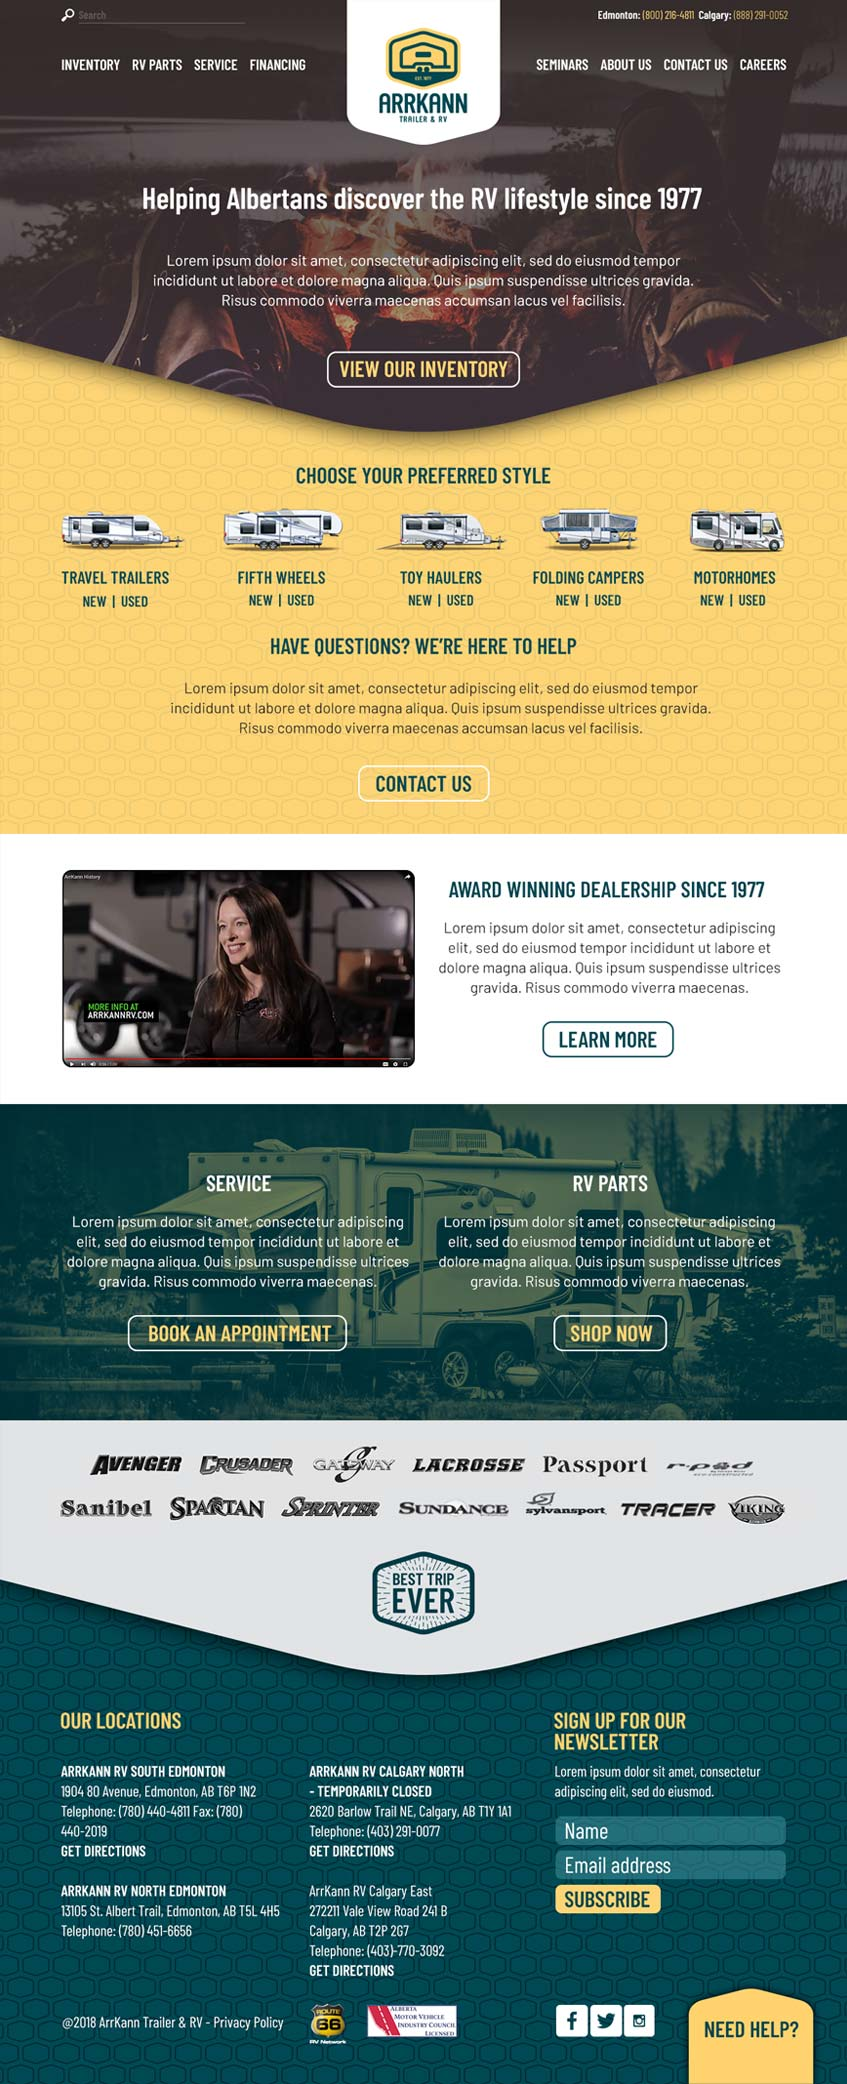 Website redesign mock-up